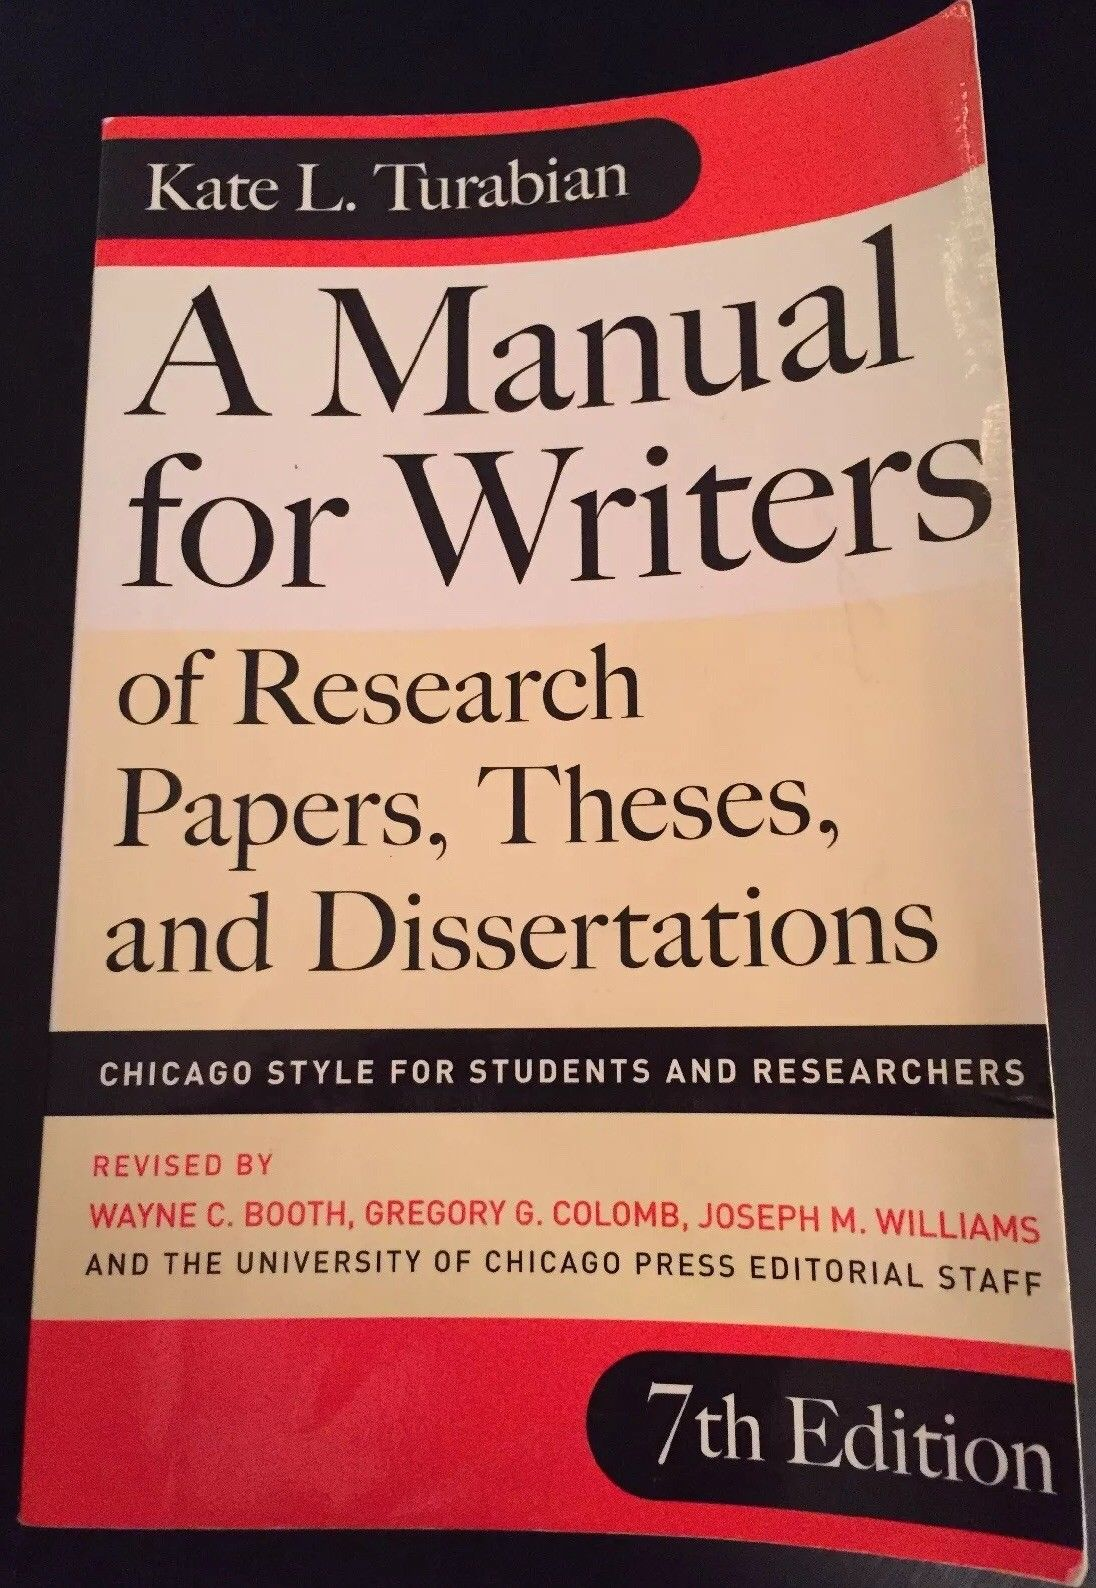 018 Research Paper Manual For Writers Of Papers Theses And Dissertations S Magnificent A 8th Ed Pdf Full